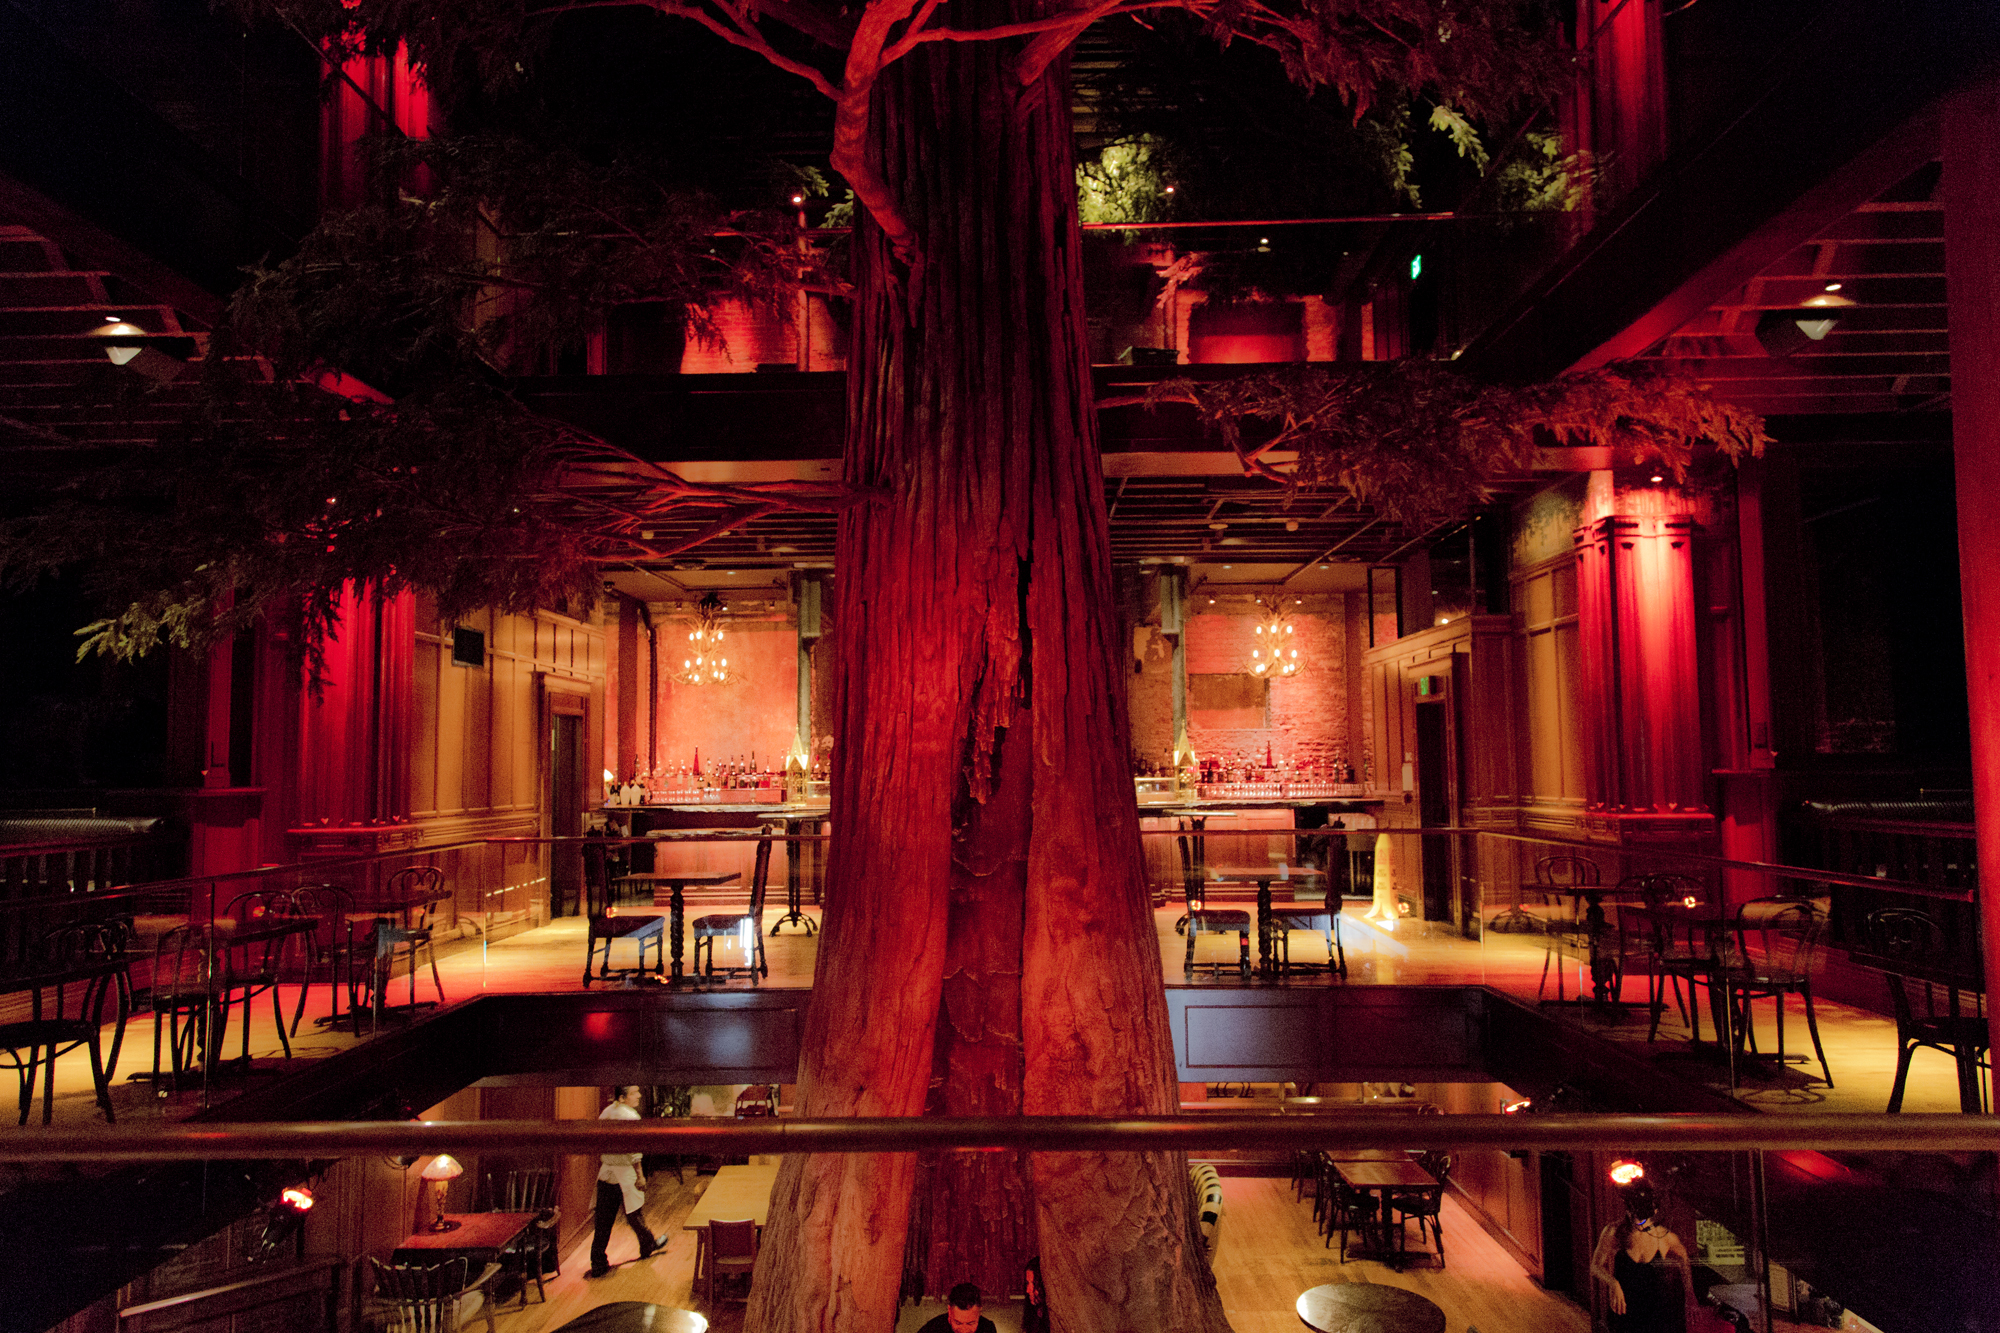 Clifton's Cafeteria - Los Angeles, California.  Photograph by Candacy Taylor, 2016